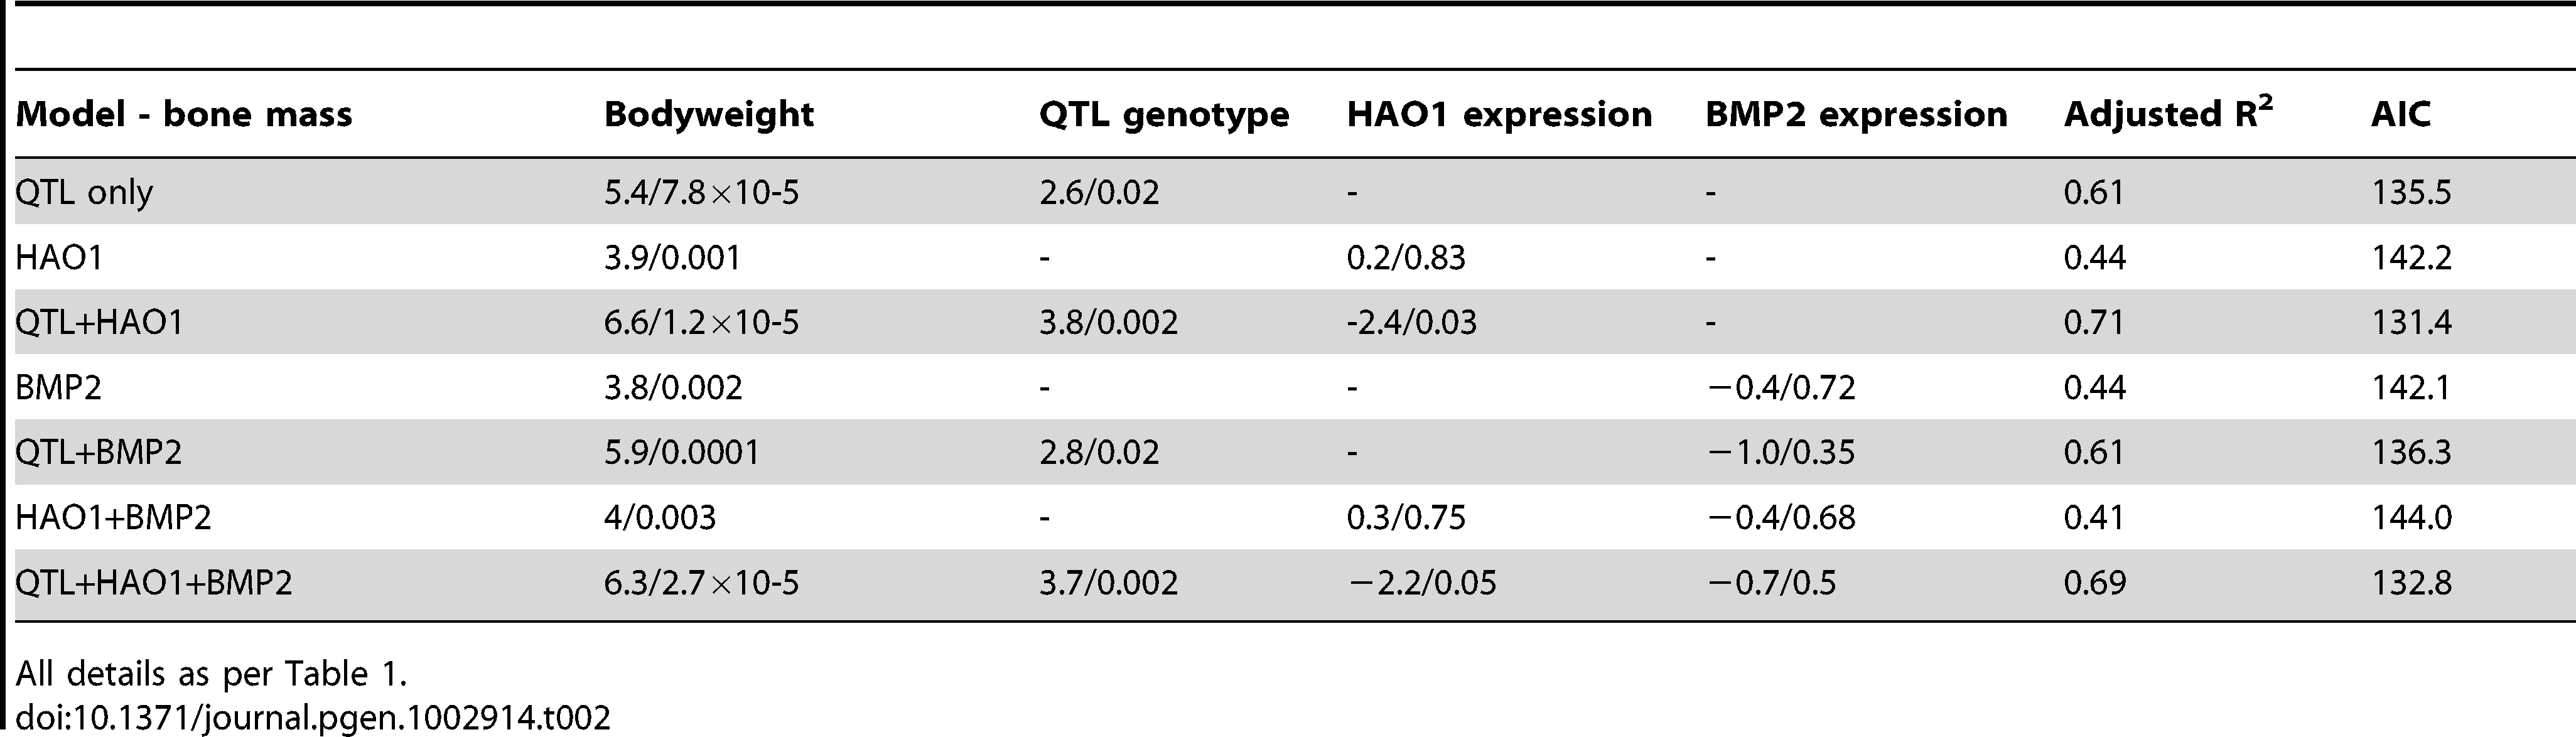 General Linear Model results for gene expression and QTL effect on bone mass.